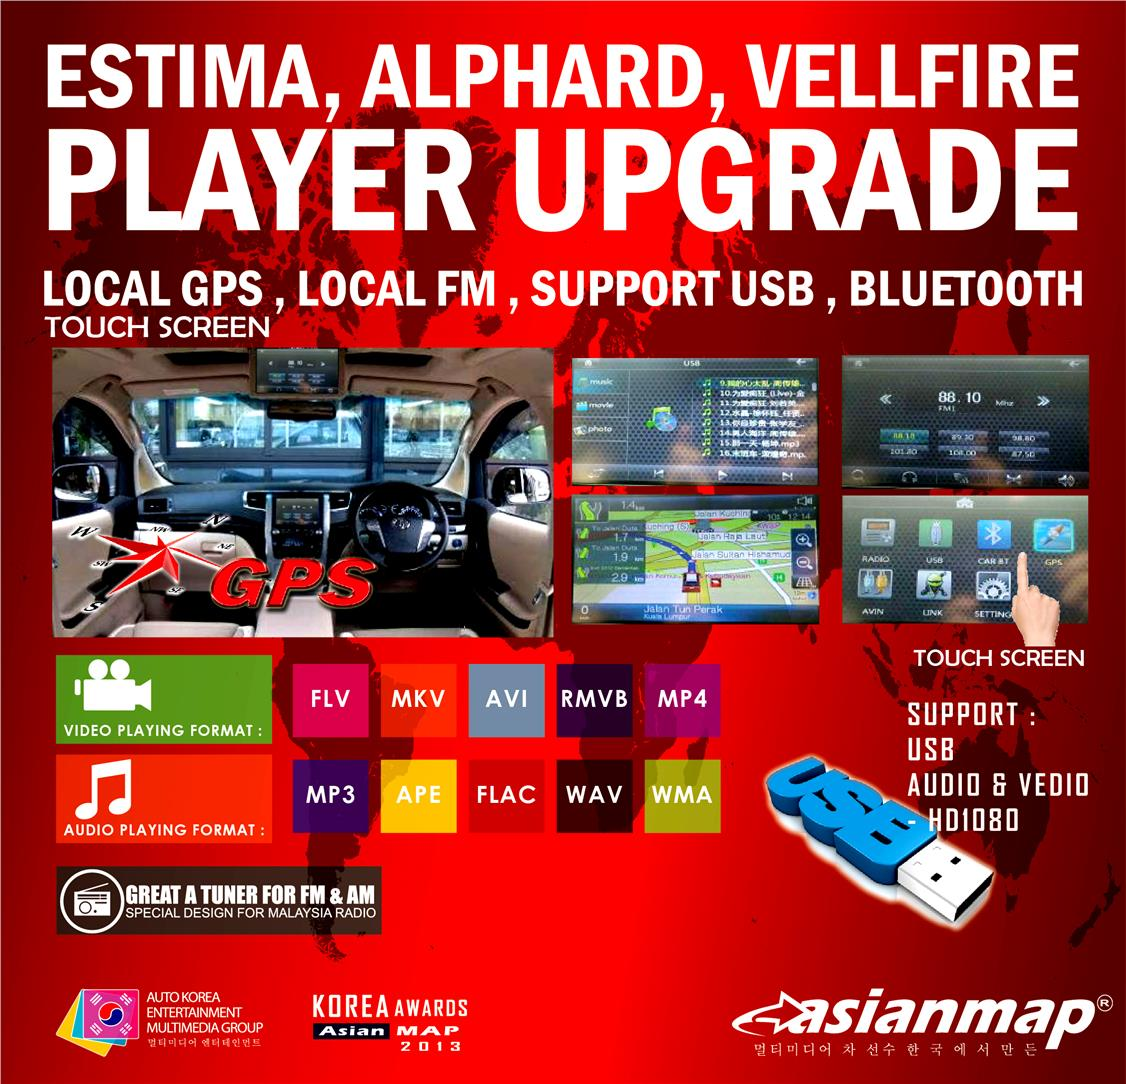 ESTIMA, ALPHARD, VELLFIRE UPGRANDE LOCAL FM , RMVB, MP5, LOCAL GPS